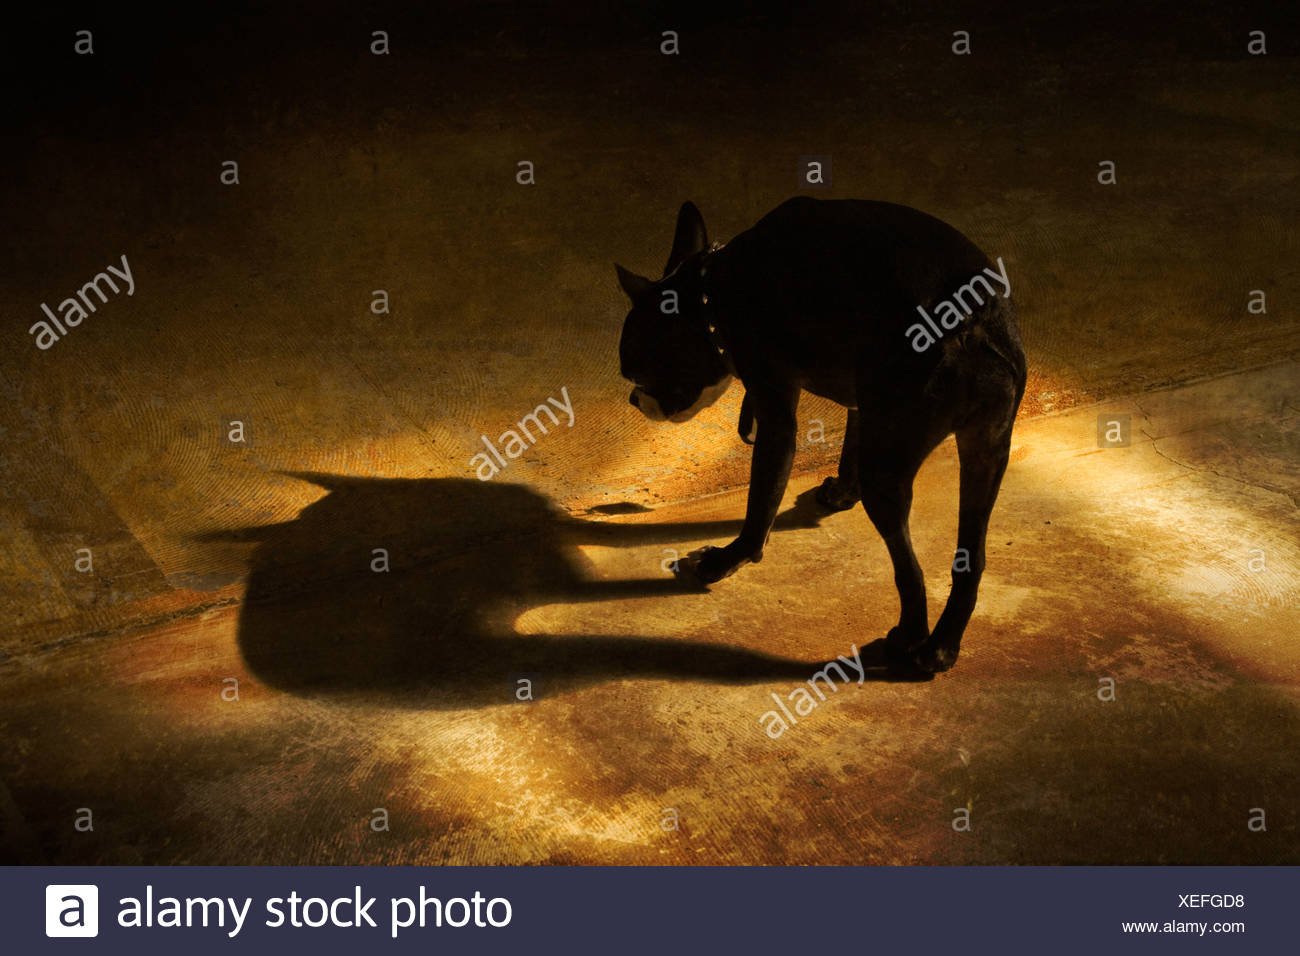 A dog and its shadow - Stock Image